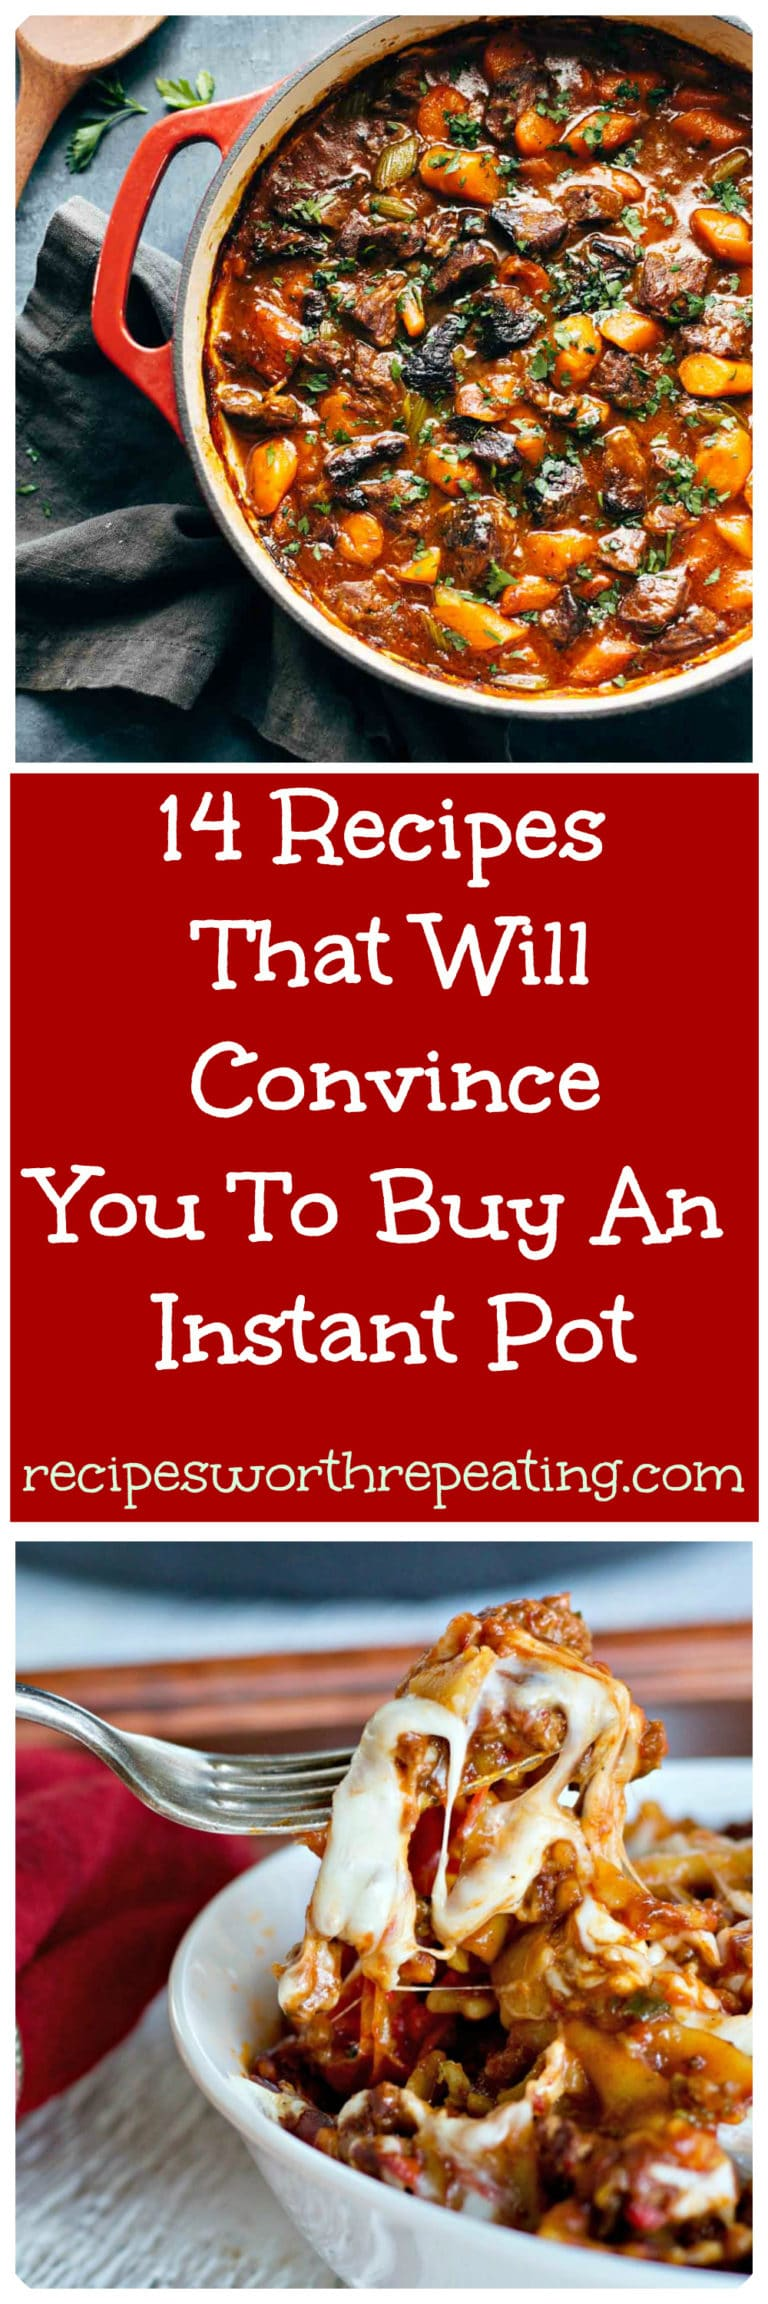 14 Recipes That Will Convince You To Buy An Instant Pot  Recipes Worth Repeating